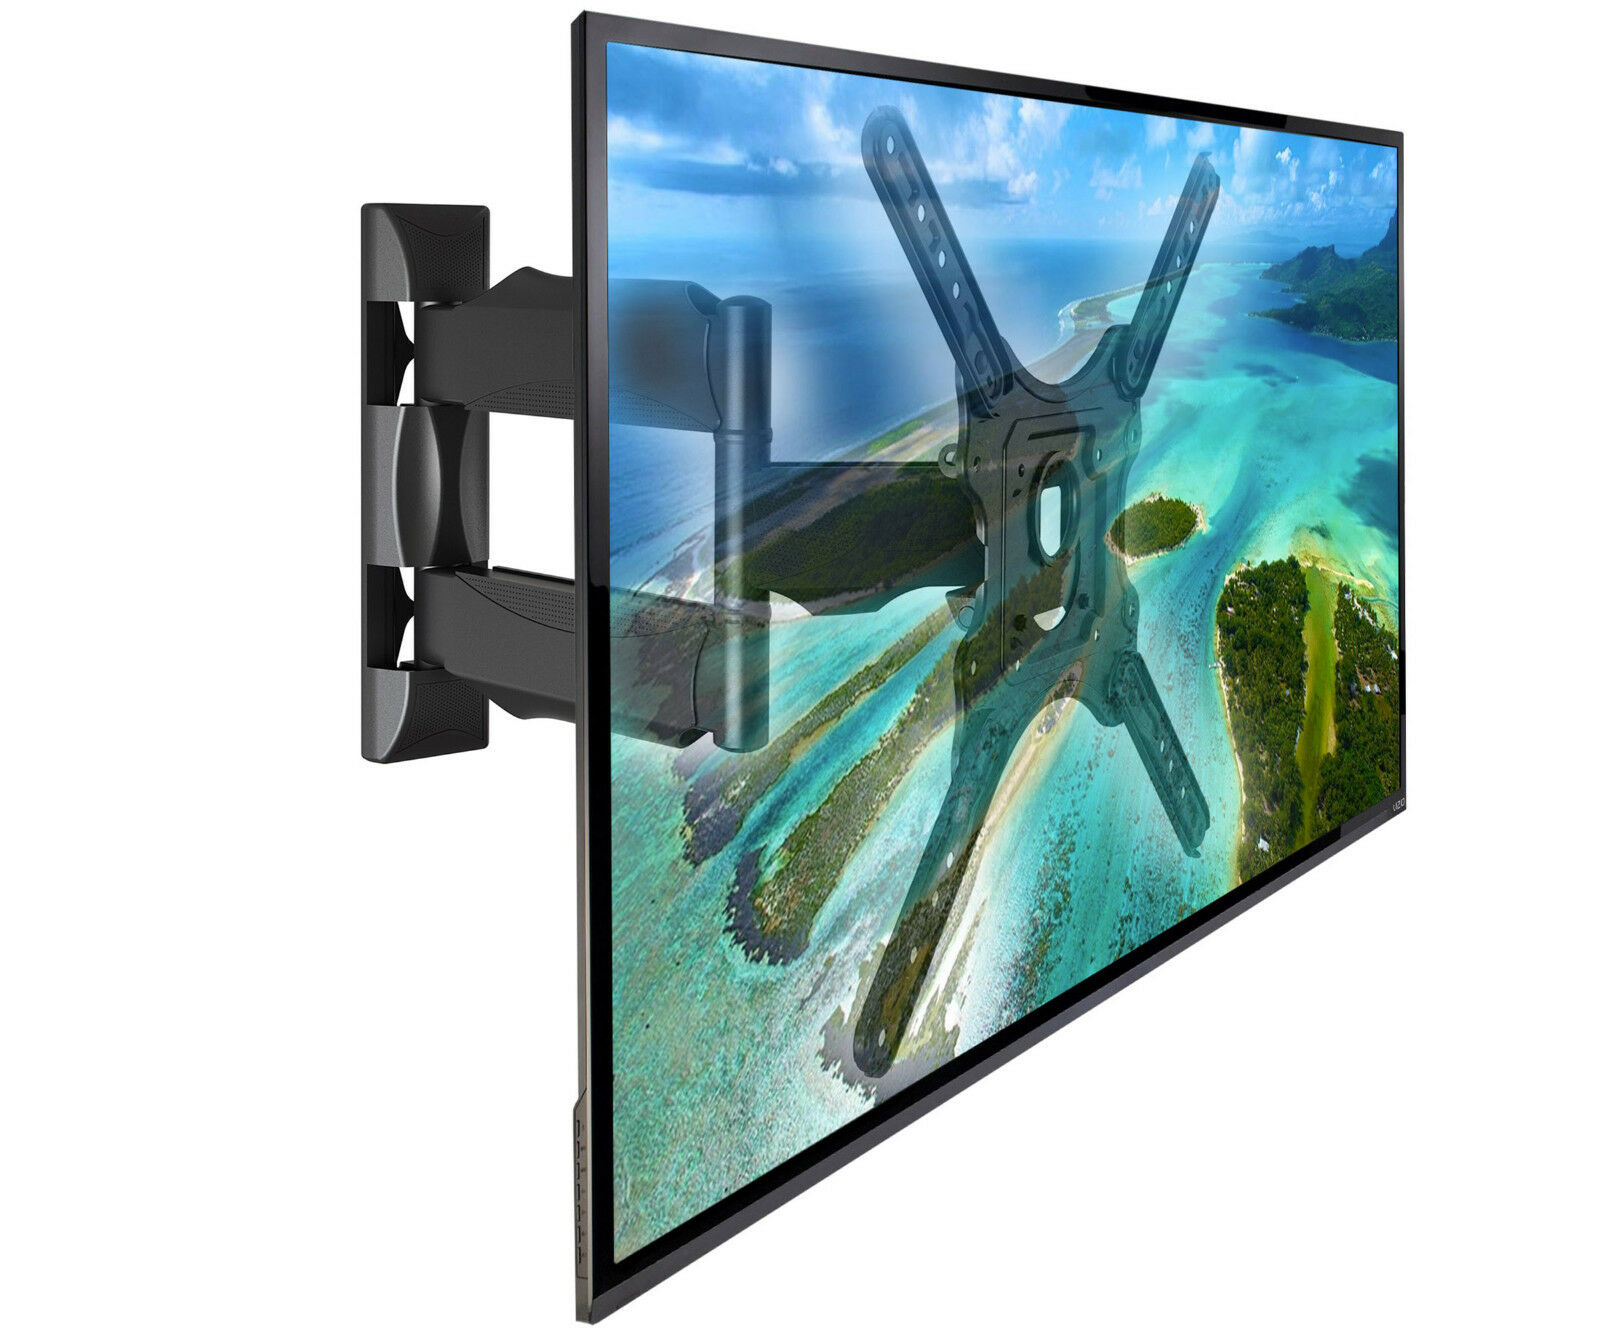 lcd led tv wandhalterung 32 55 fernseher bis vesa 400 neigbar schwenkbar nb p4 eur 24 99. Black Bedroom Furniture Sets. Home Design Ideas